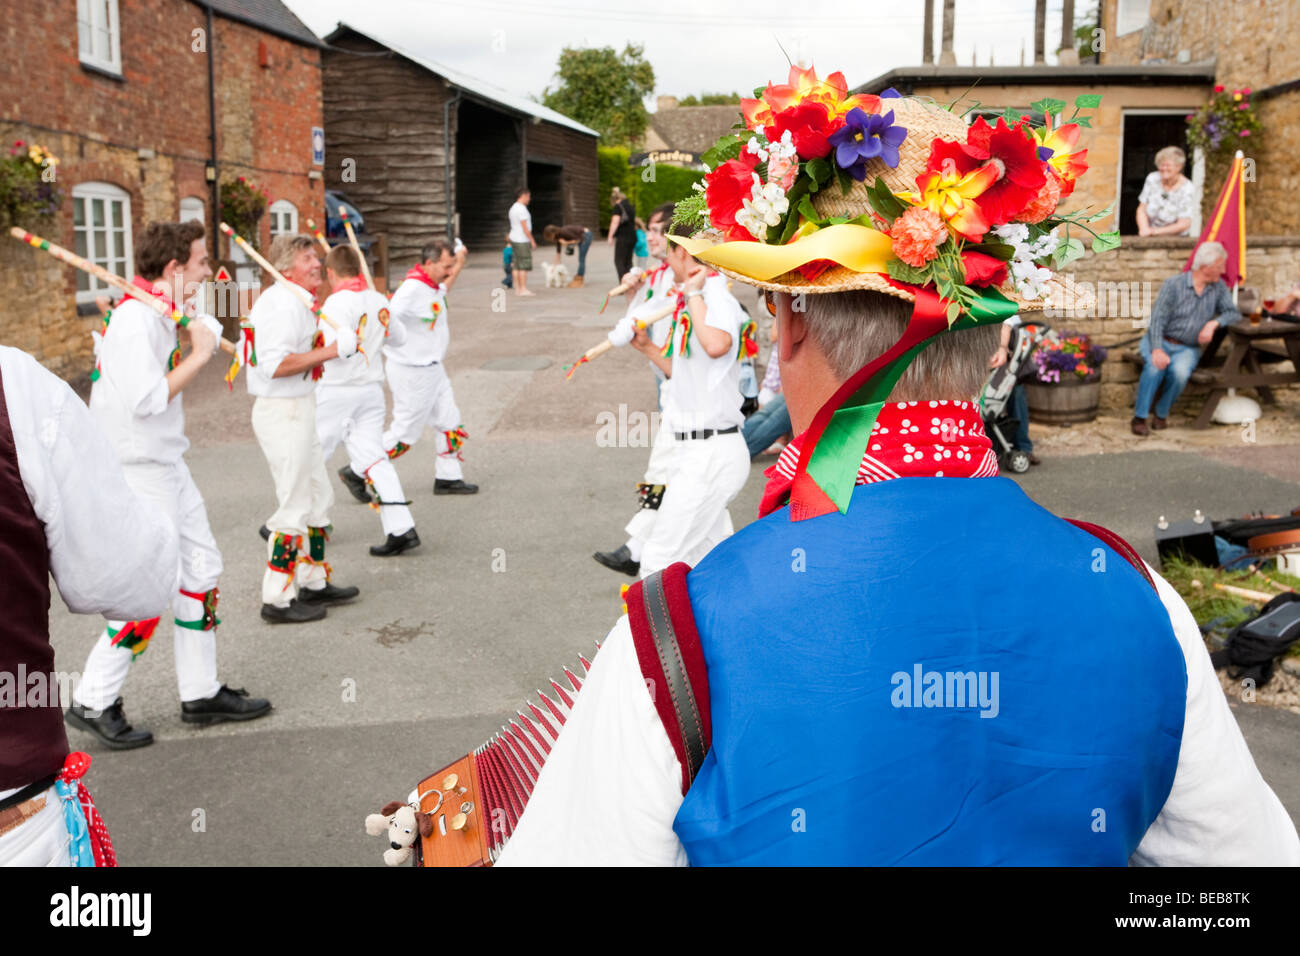 The Chipping Campden Morris Men dancing in front of the Bell Inn in the Cotswold village of Willersey, Gloucestershire - Stock Image